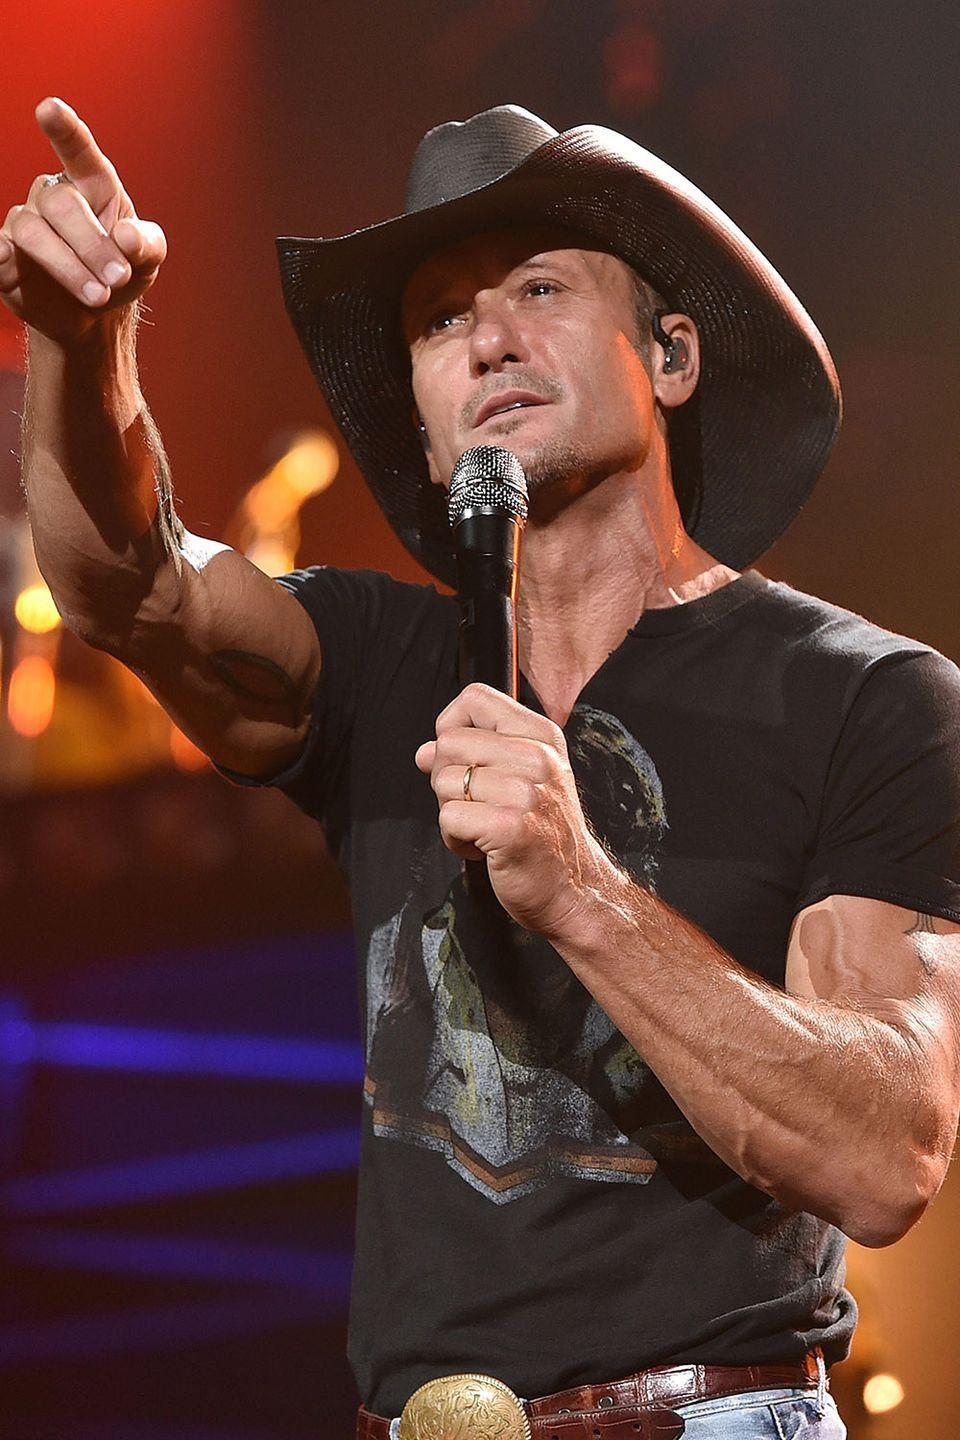 """<p>The country music star discussed his road to sobriety on Ellen where he recalled how he made his decision to change his ways back in 2008: 'I think it's a personal choice—when it gets to the point where you think it's affecting you adversely and it's affecting your relationships.' </p><p>H/T: <a href=""""http://www.eonline.com/news/385067/tim-mcgraw-opens-up-on-ellen-about-being-sober-reveals-he-isn-t-wearing-underwear"""" rel=""""nofollow noopener"""" target=""""_blank"""" data-ylk=""""slk:E!"""" class=""""link rapid-noclick-resp"""">E!</a></p>"""